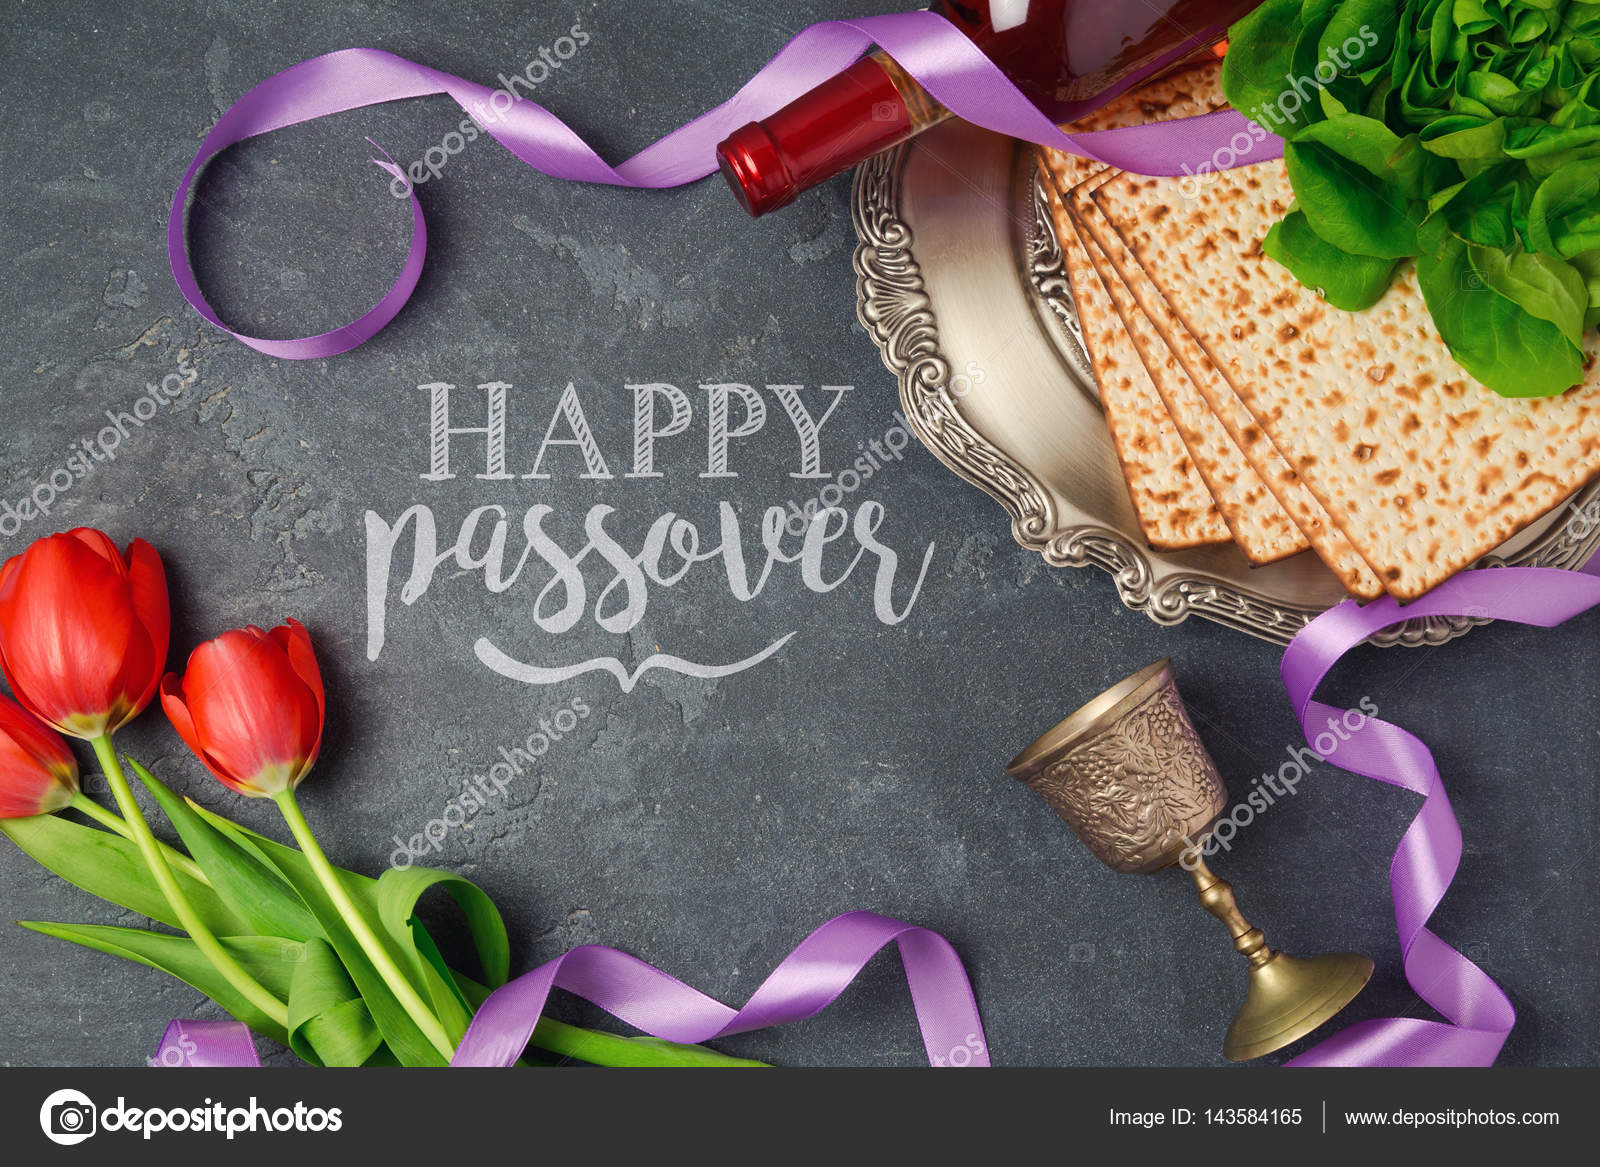 Passover holiday greeting card stock photo maglara 143584165 passover holiday greeting card stock photo kristyandbryce Images